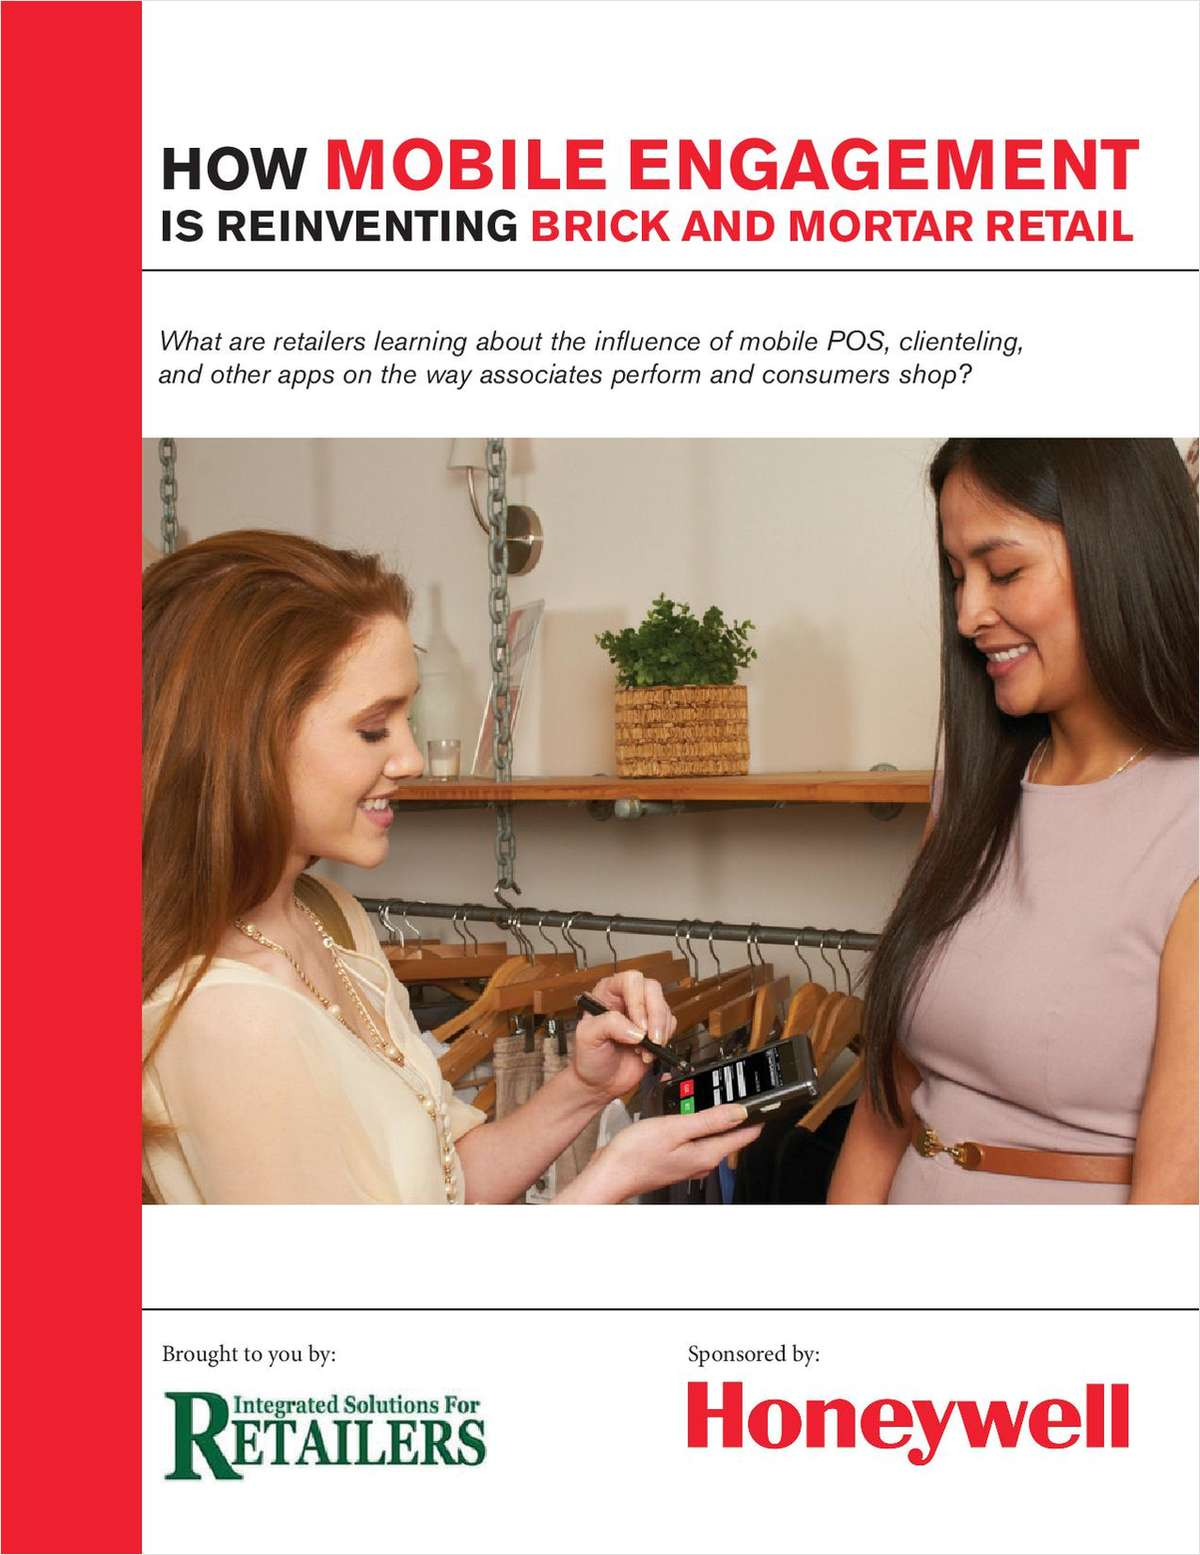 How Mobile Engagement is Reinventing Brick and Mortar Retail